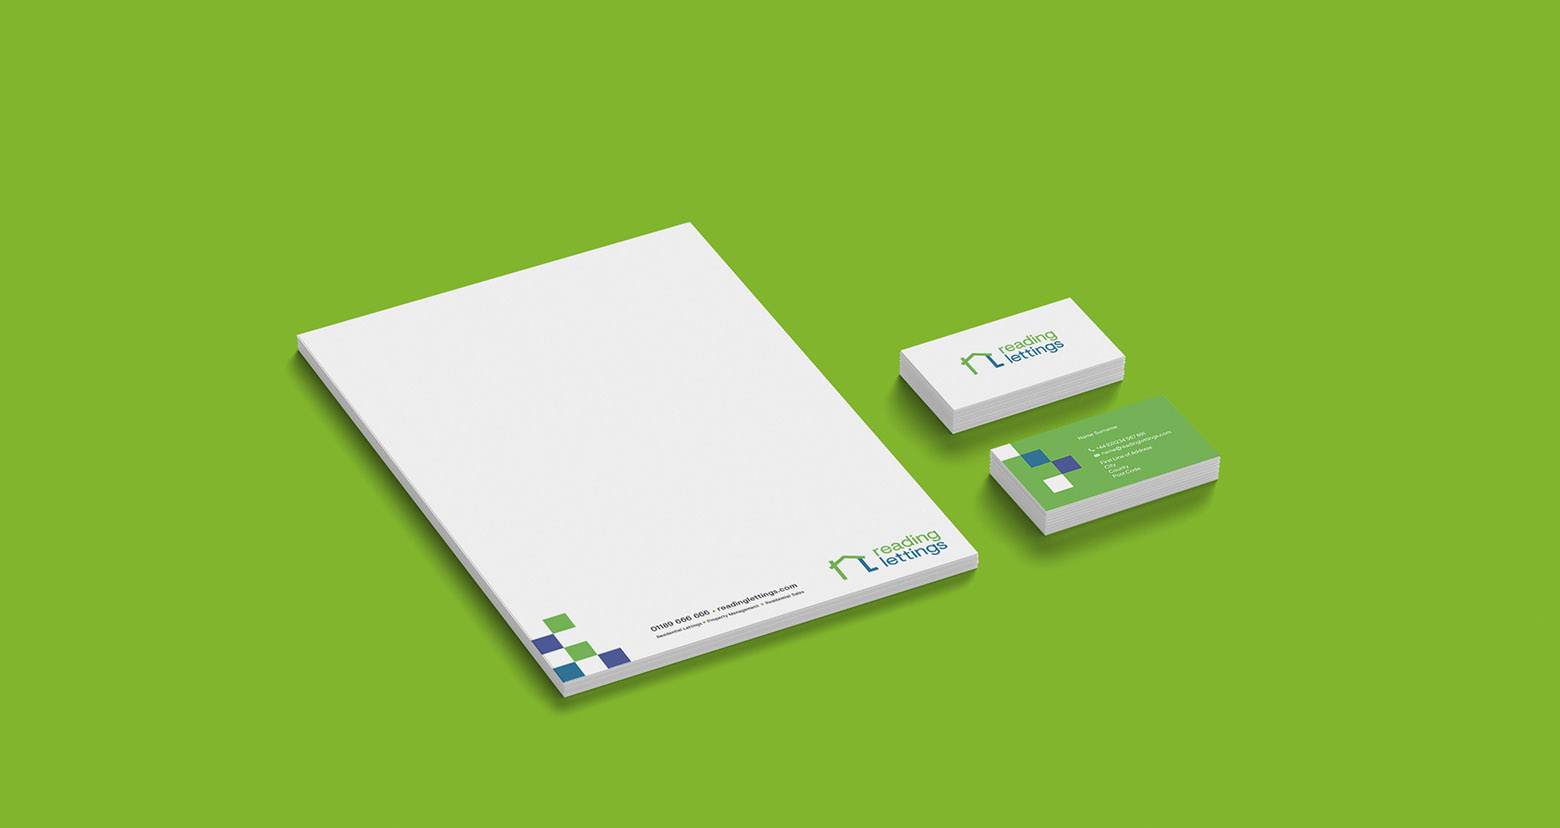 Reading Lettings Stationery design